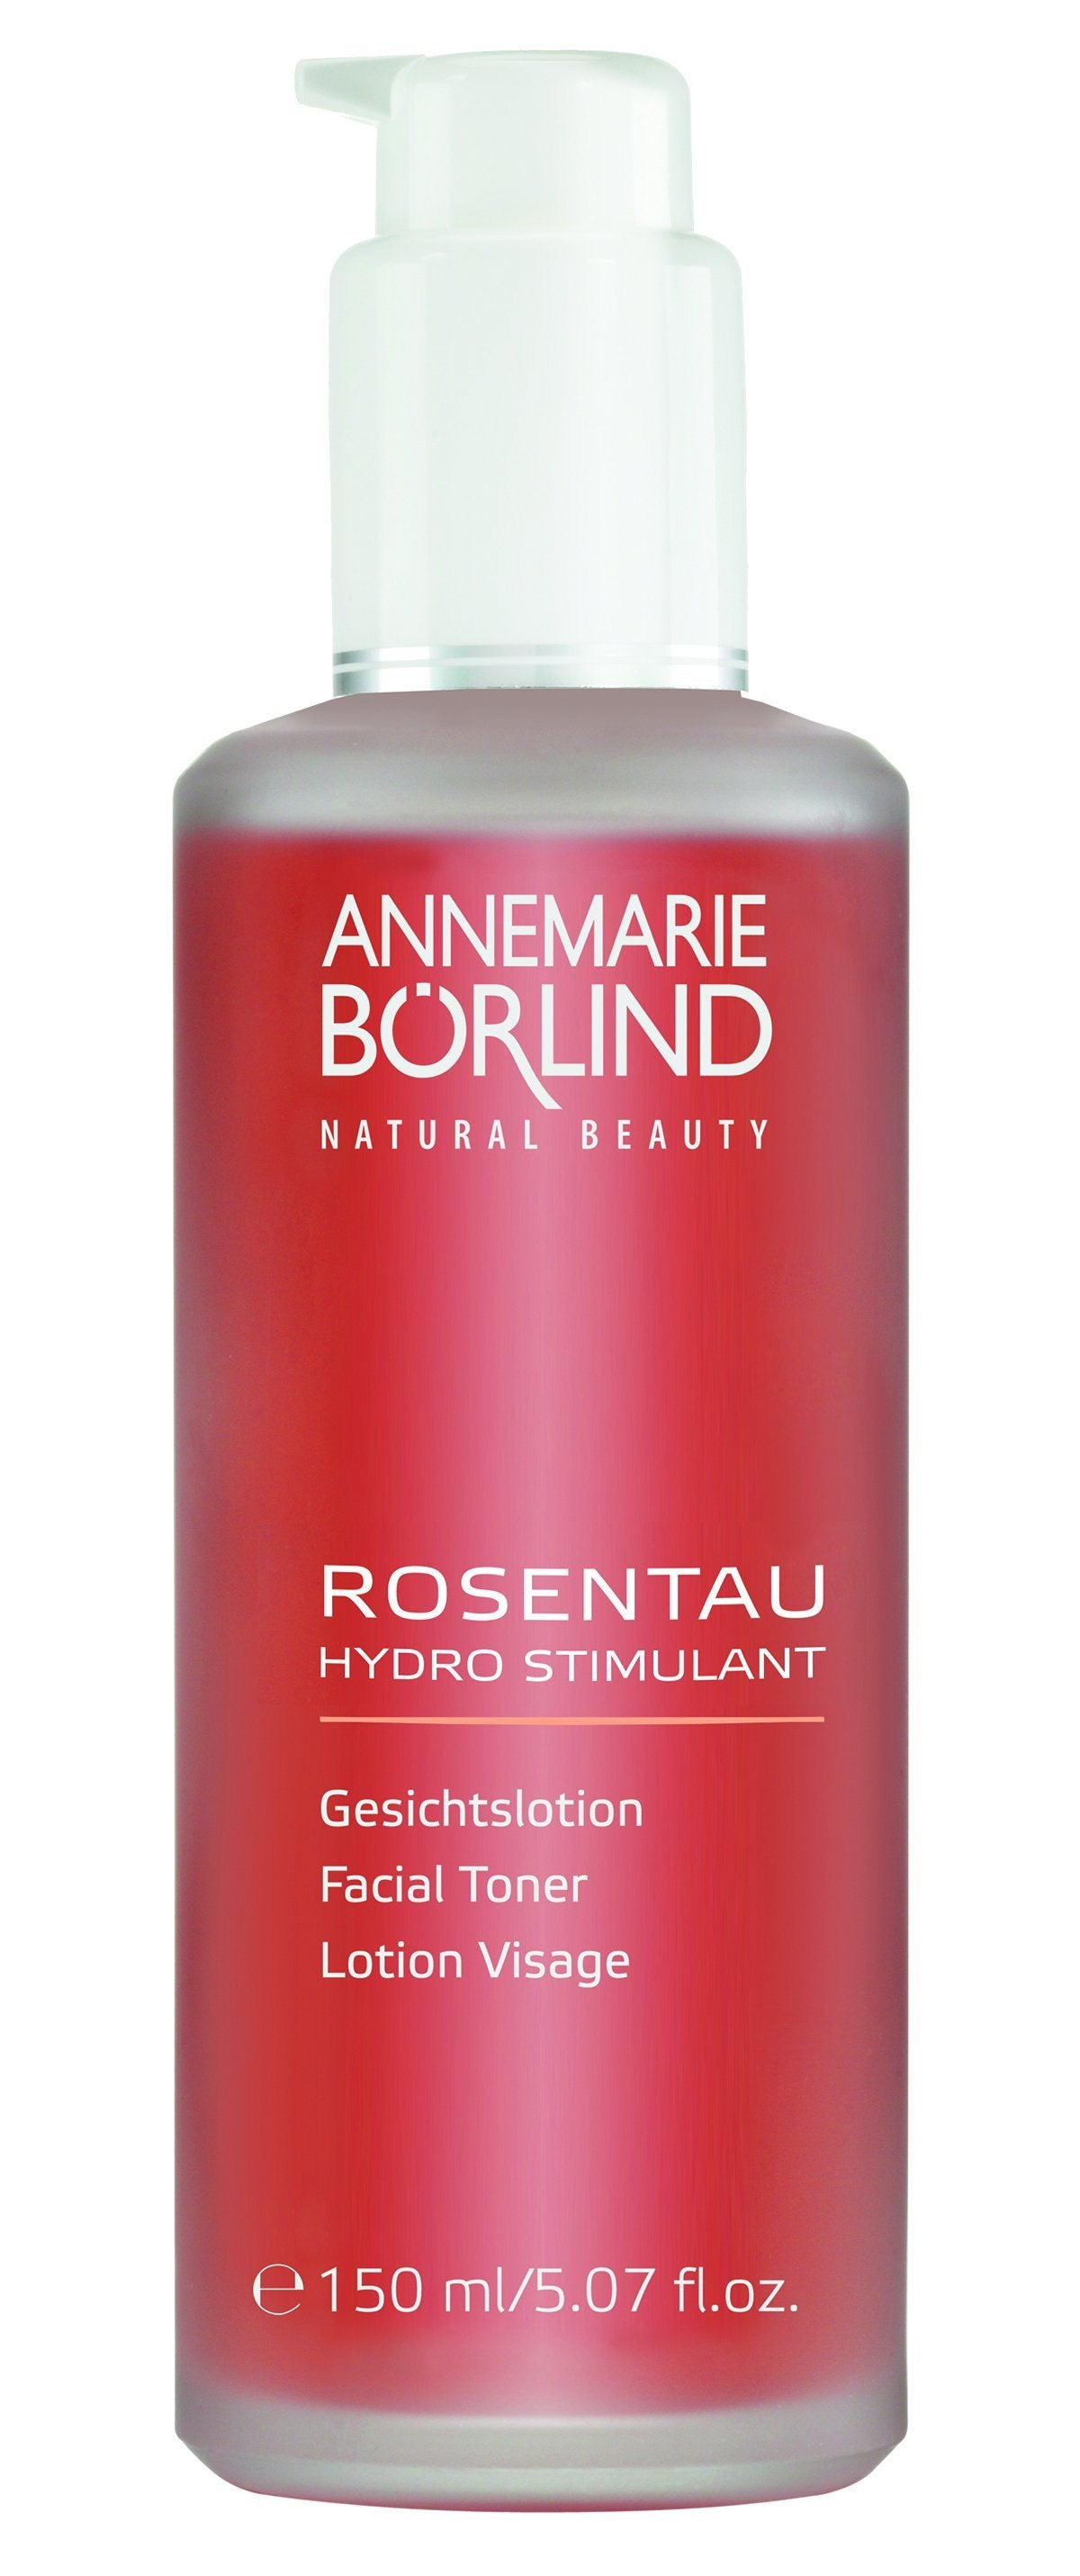 Personal Care - Annemarie Borlind Rose Dew Facial Toner, 150mL